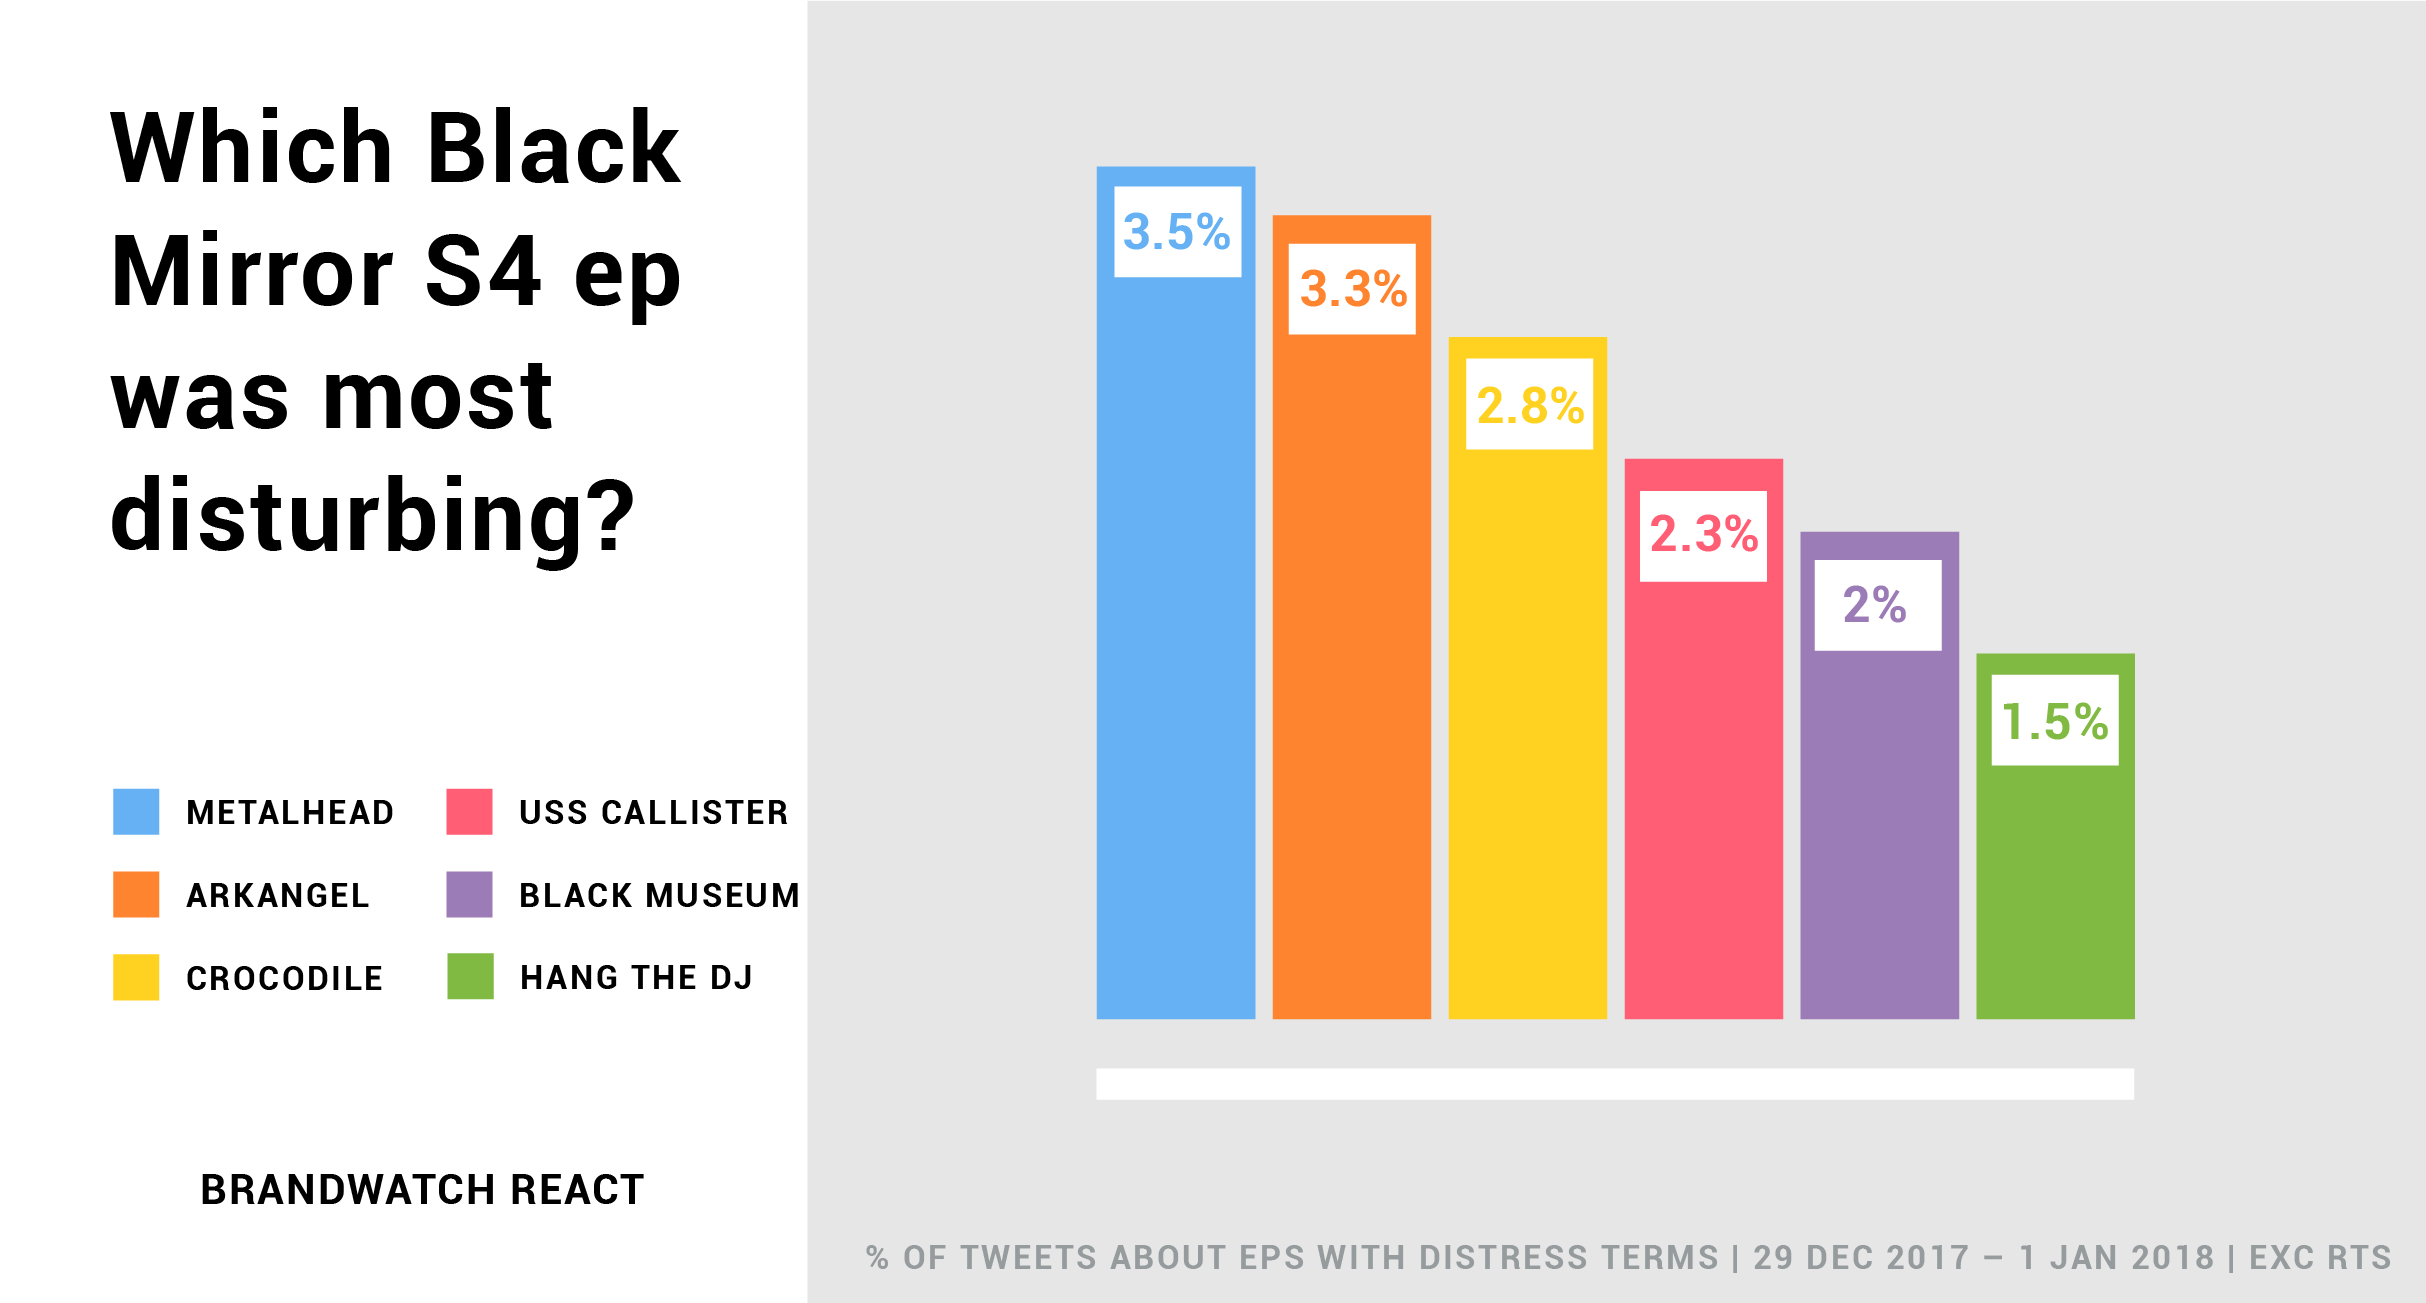 A bar chart shows the % of tweets about each Black Mirror season 4 episode which contain distressing terms. Retweets weren't included